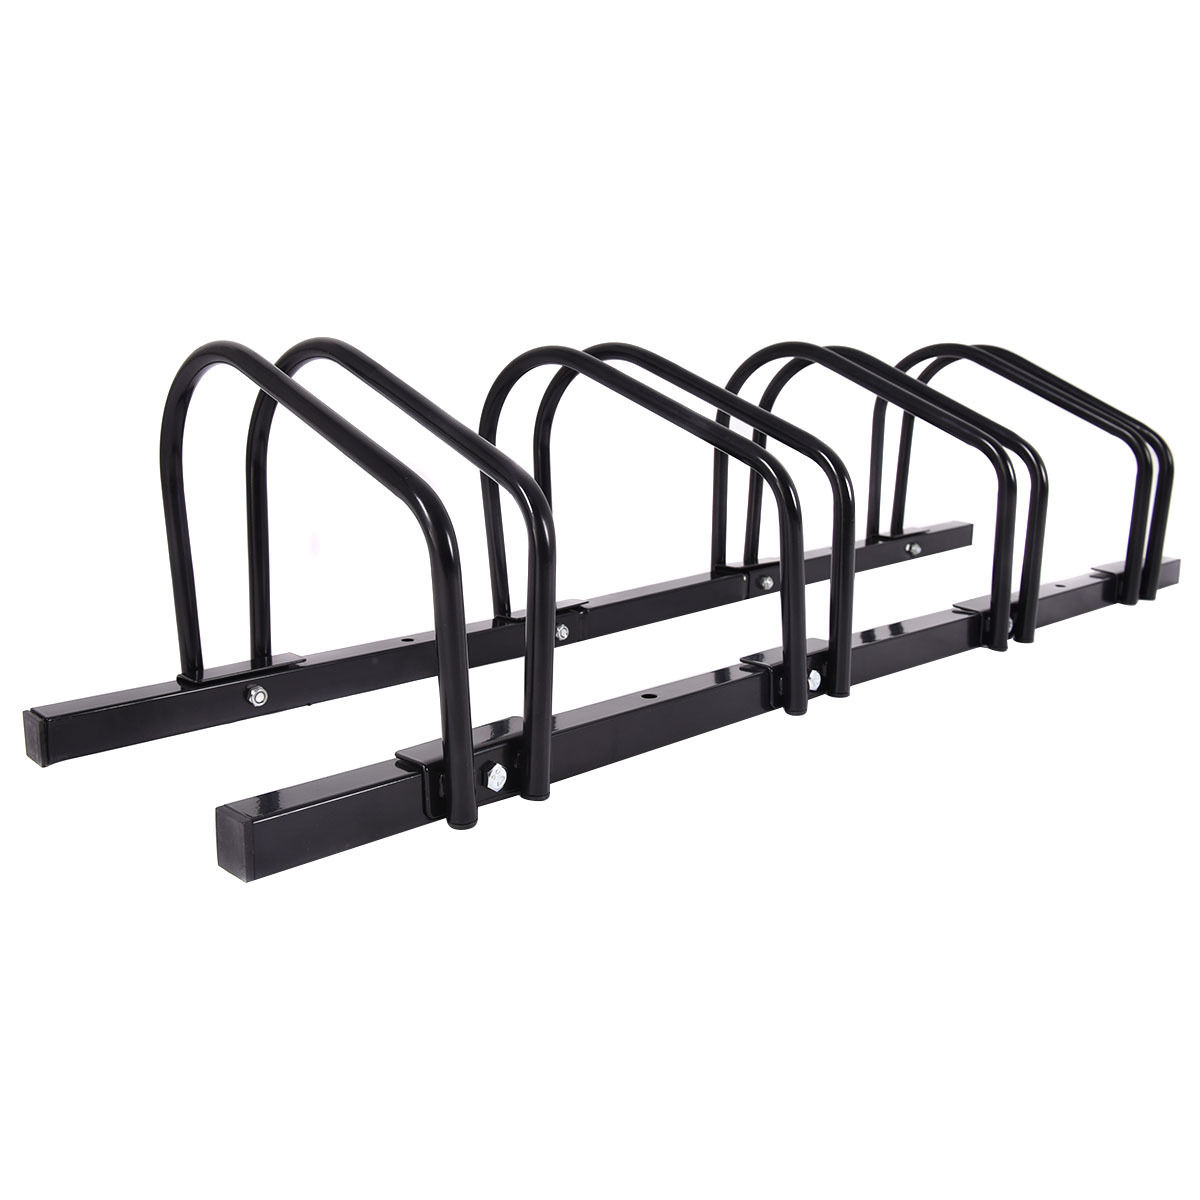 Gymax 4 Bike Bicycle Stand Parking Garage Storage Cycling Rack Black - image 8 of 10